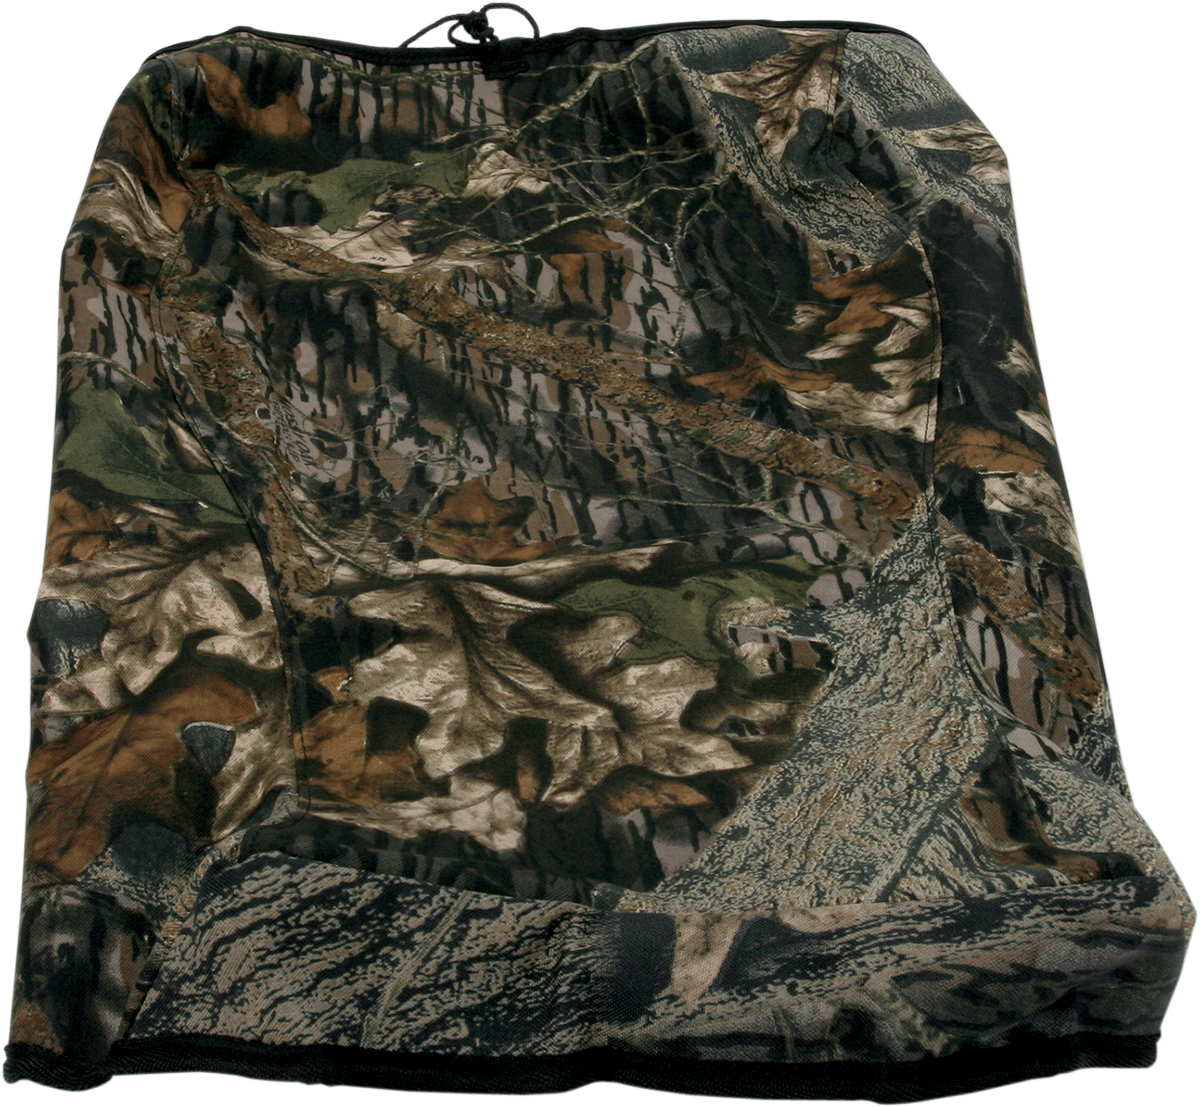 Moose Utility Camo ATV Seat Cover for 00-04 Yamaha YFM 400 450 Kodiak 4x2